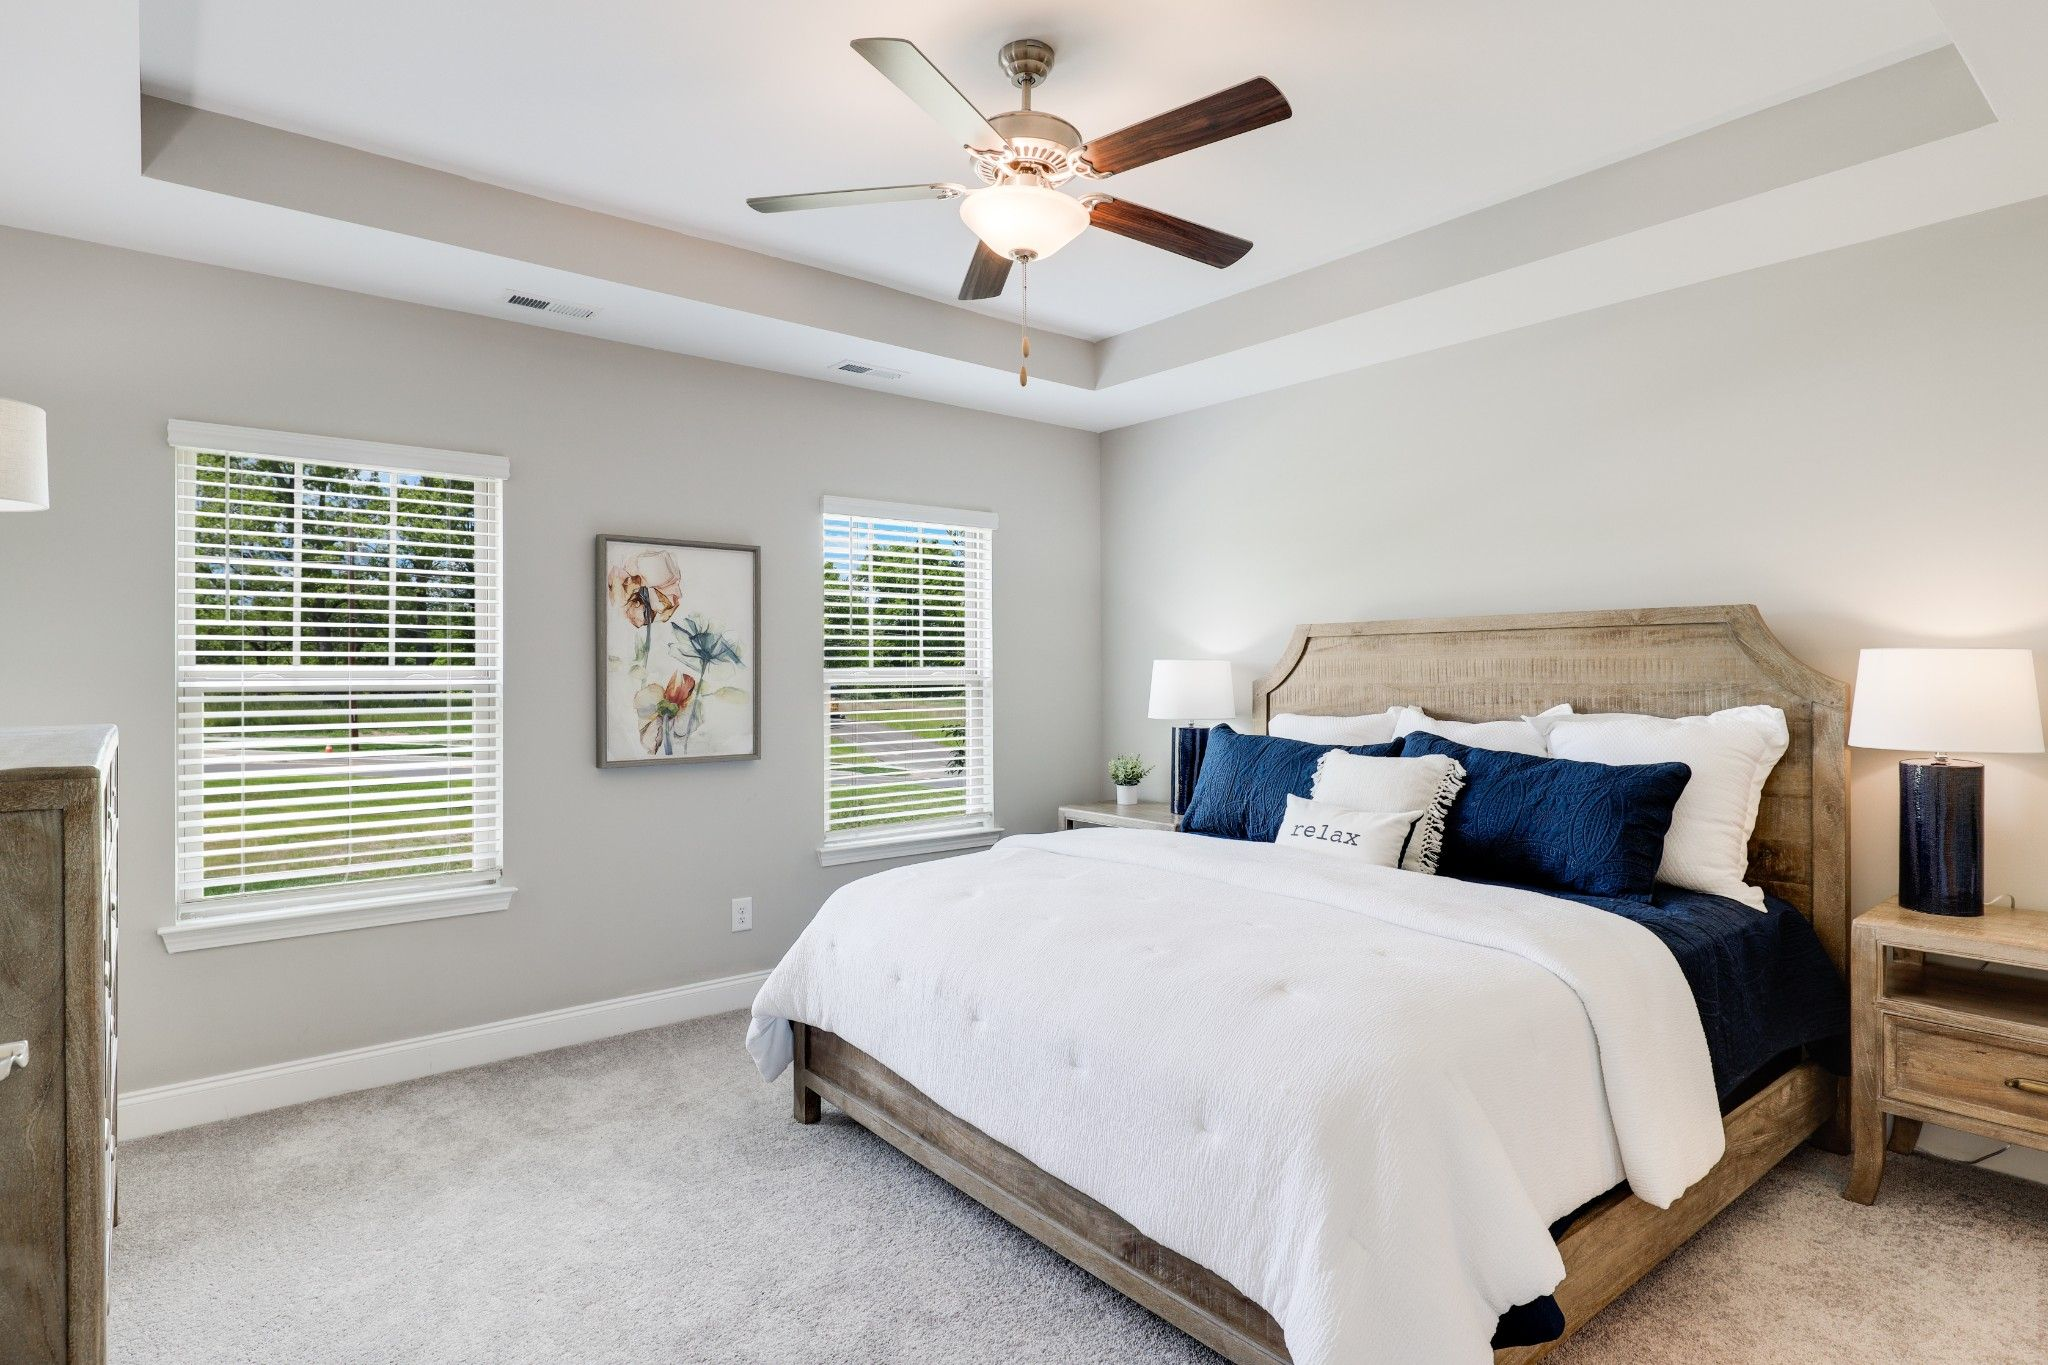 Bedroom featured in The Everleigh Courtyard Cottage By Goodall Homes in Chattanooga, GA